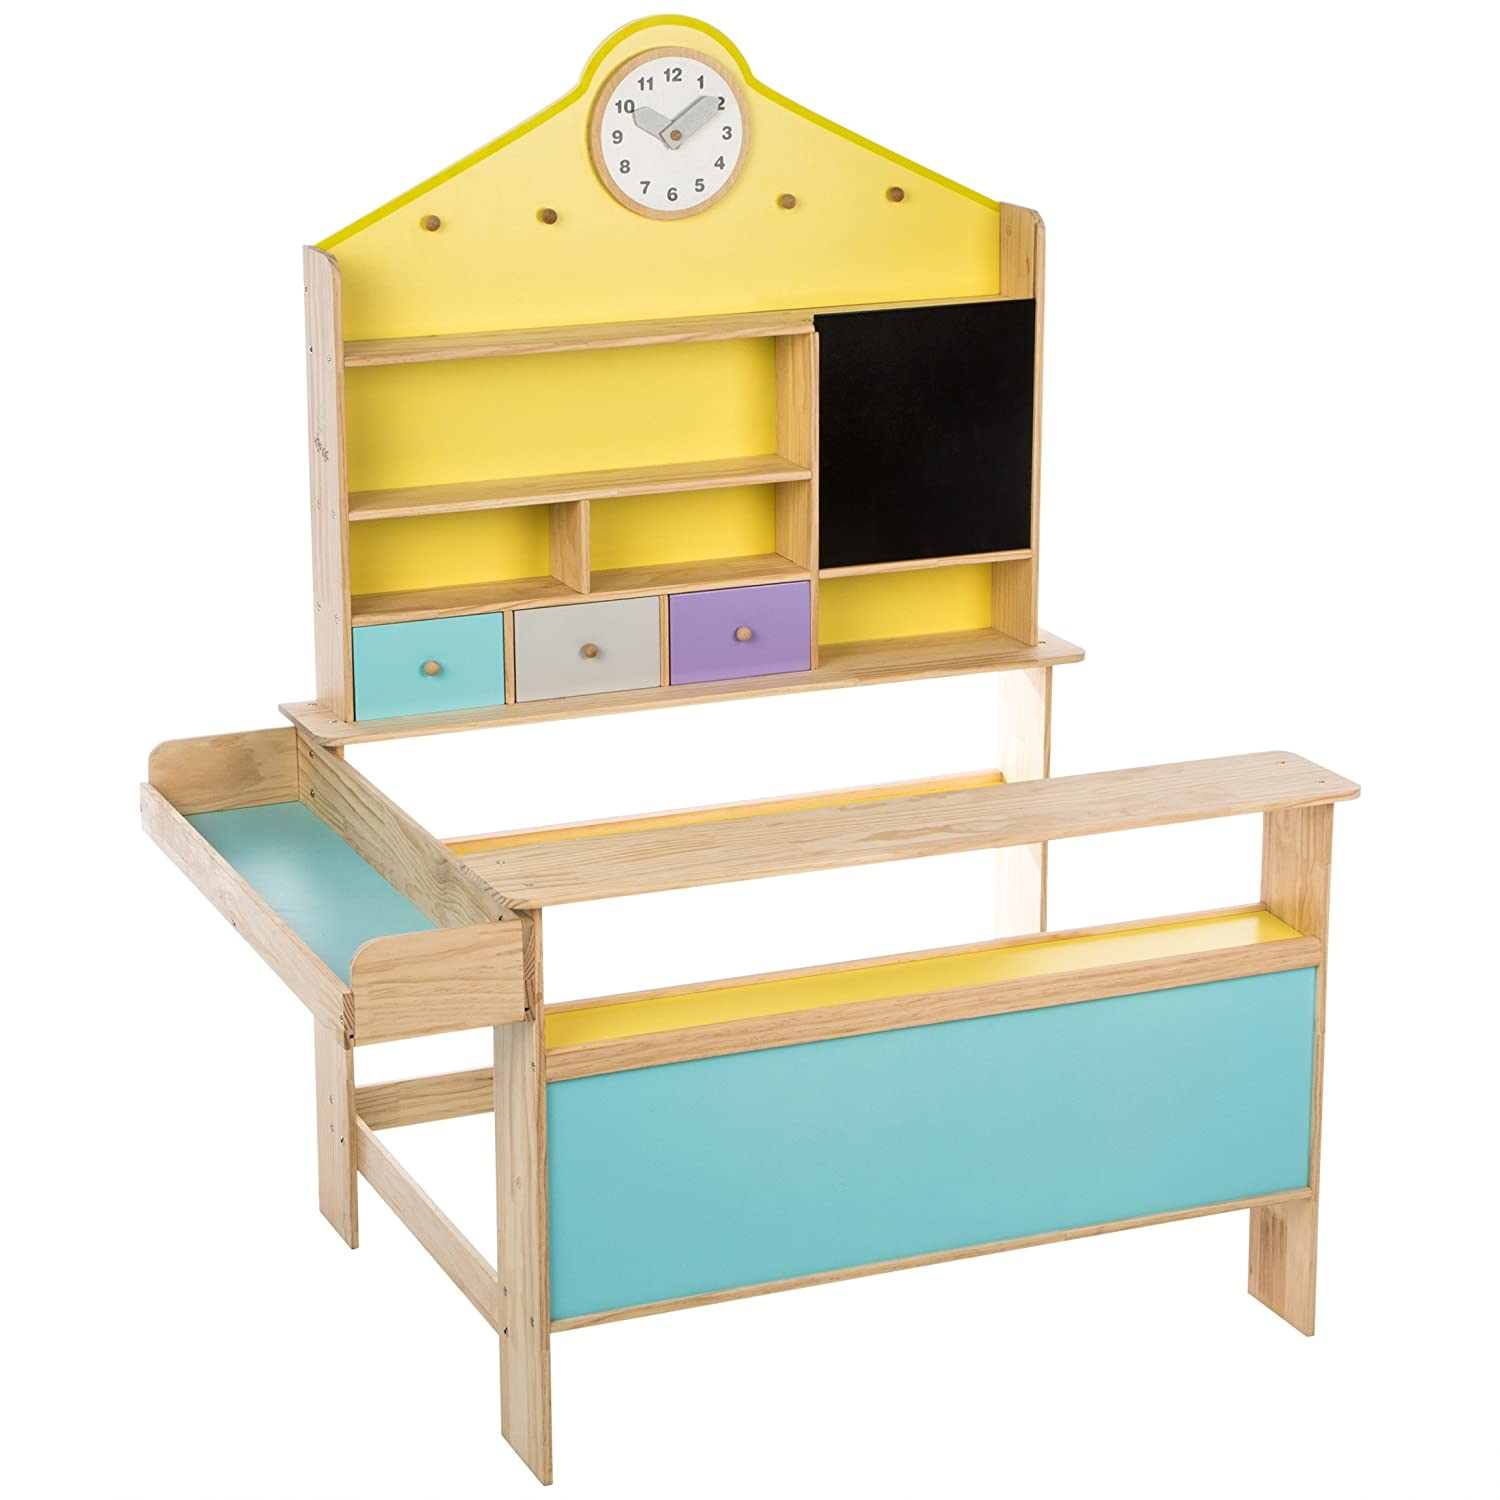 kaufladen holz mein kinderkaufladen. Black Bedroom Furniture Sets. Home Design Ideas